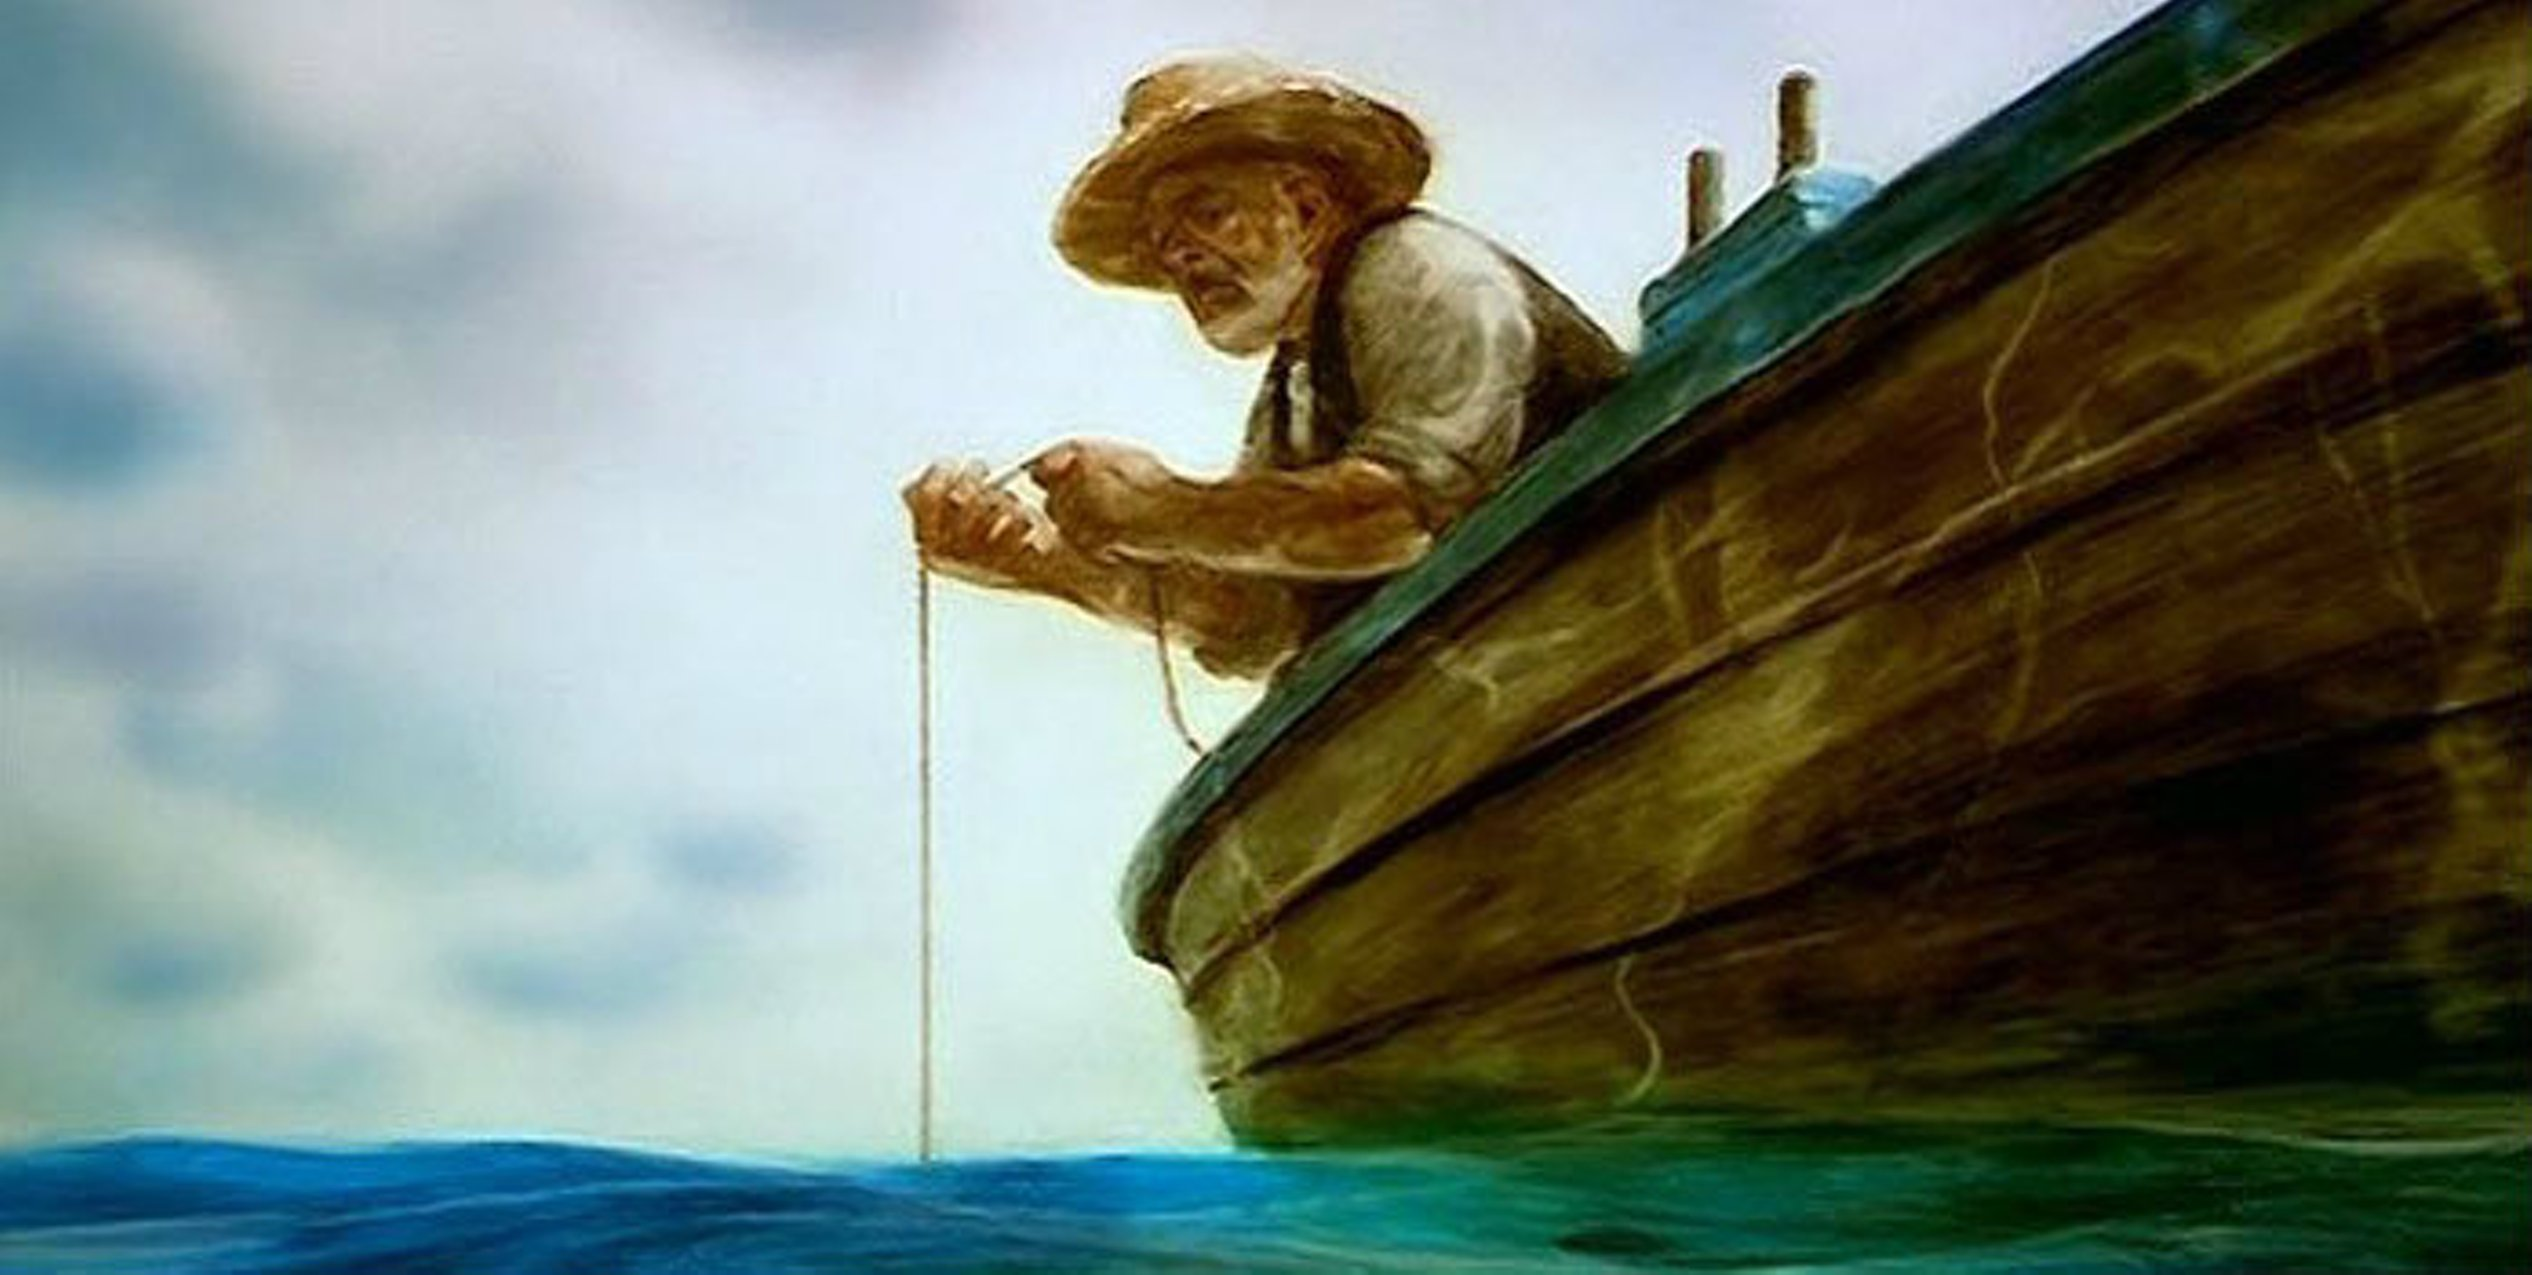 the old man in the sea code hero Old man and the sea is a story about an old man who fight a 1,000-pound marlin on the open sea improved: in old man and the sea, an old man struggles with a 1,000-pound marlin on the open sea.